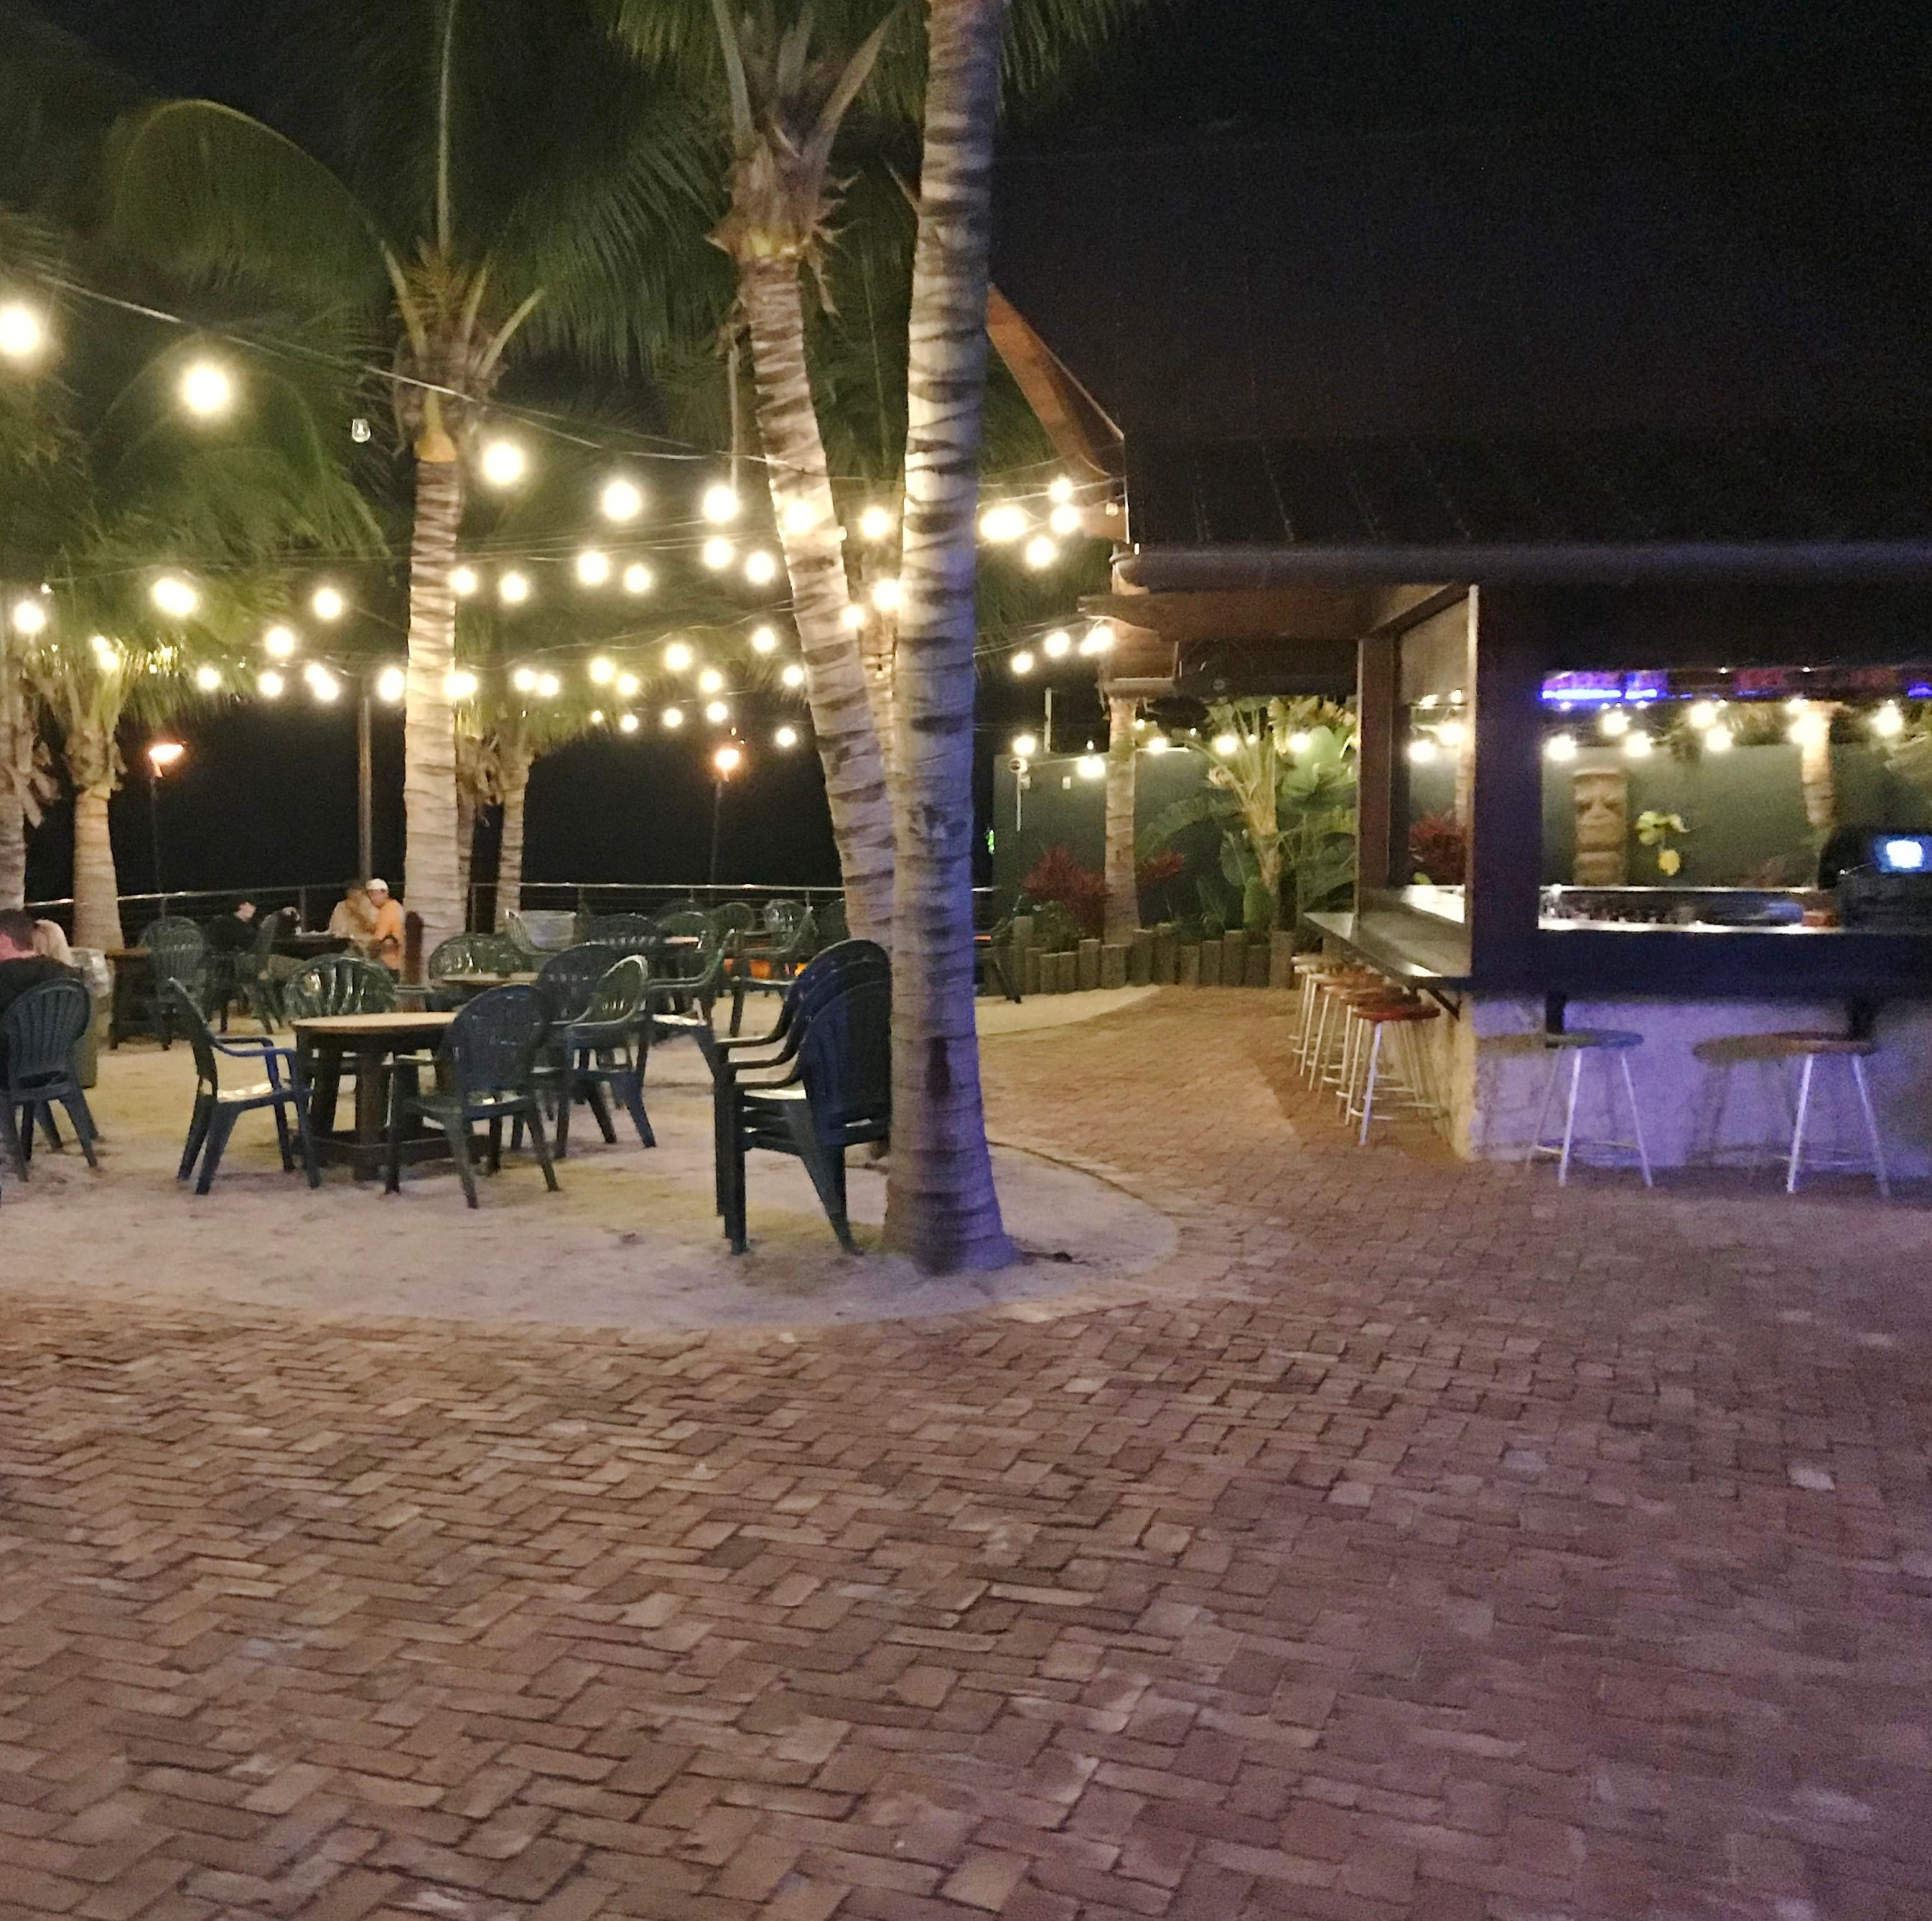 The Square Grouper Tiki Bar offers casual fare in an outdoor setting